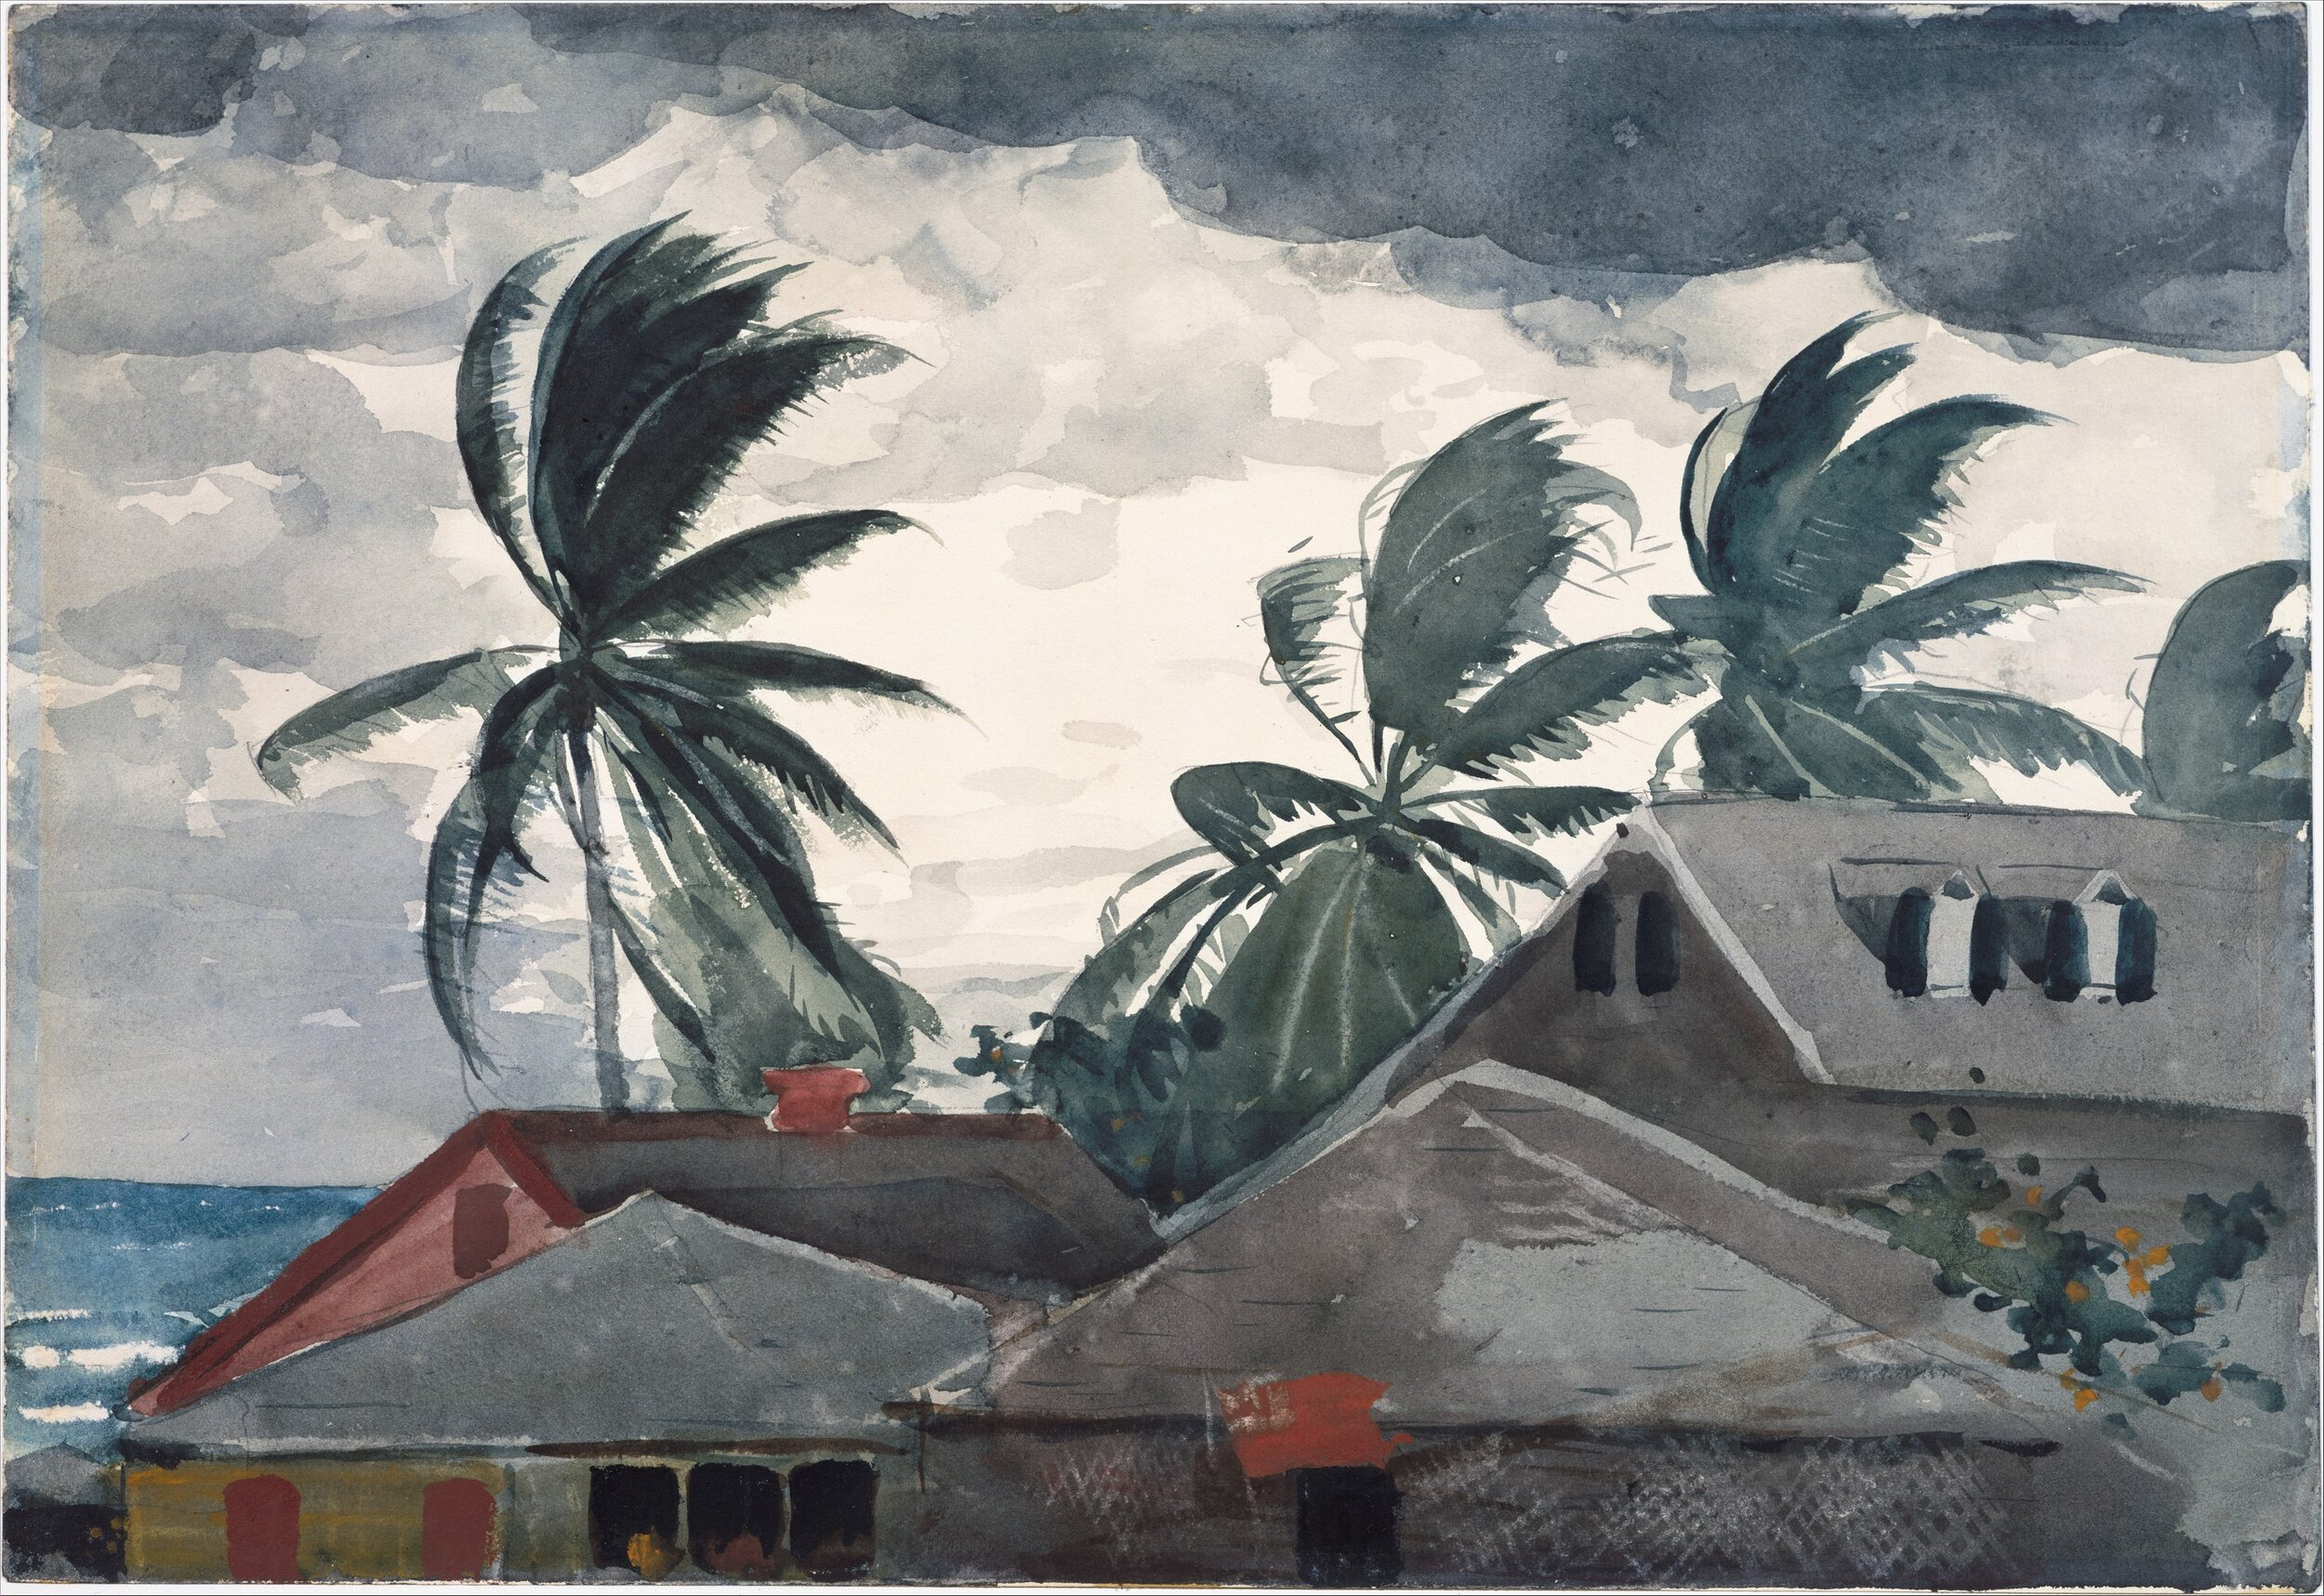 Winslow Homer. Hurricane, Bahamas. 1898. Watercolor and graphite on off-white wove paper. Copyright: Amelia B. Lazarus Fund, 1910.  www.metmuseum.org